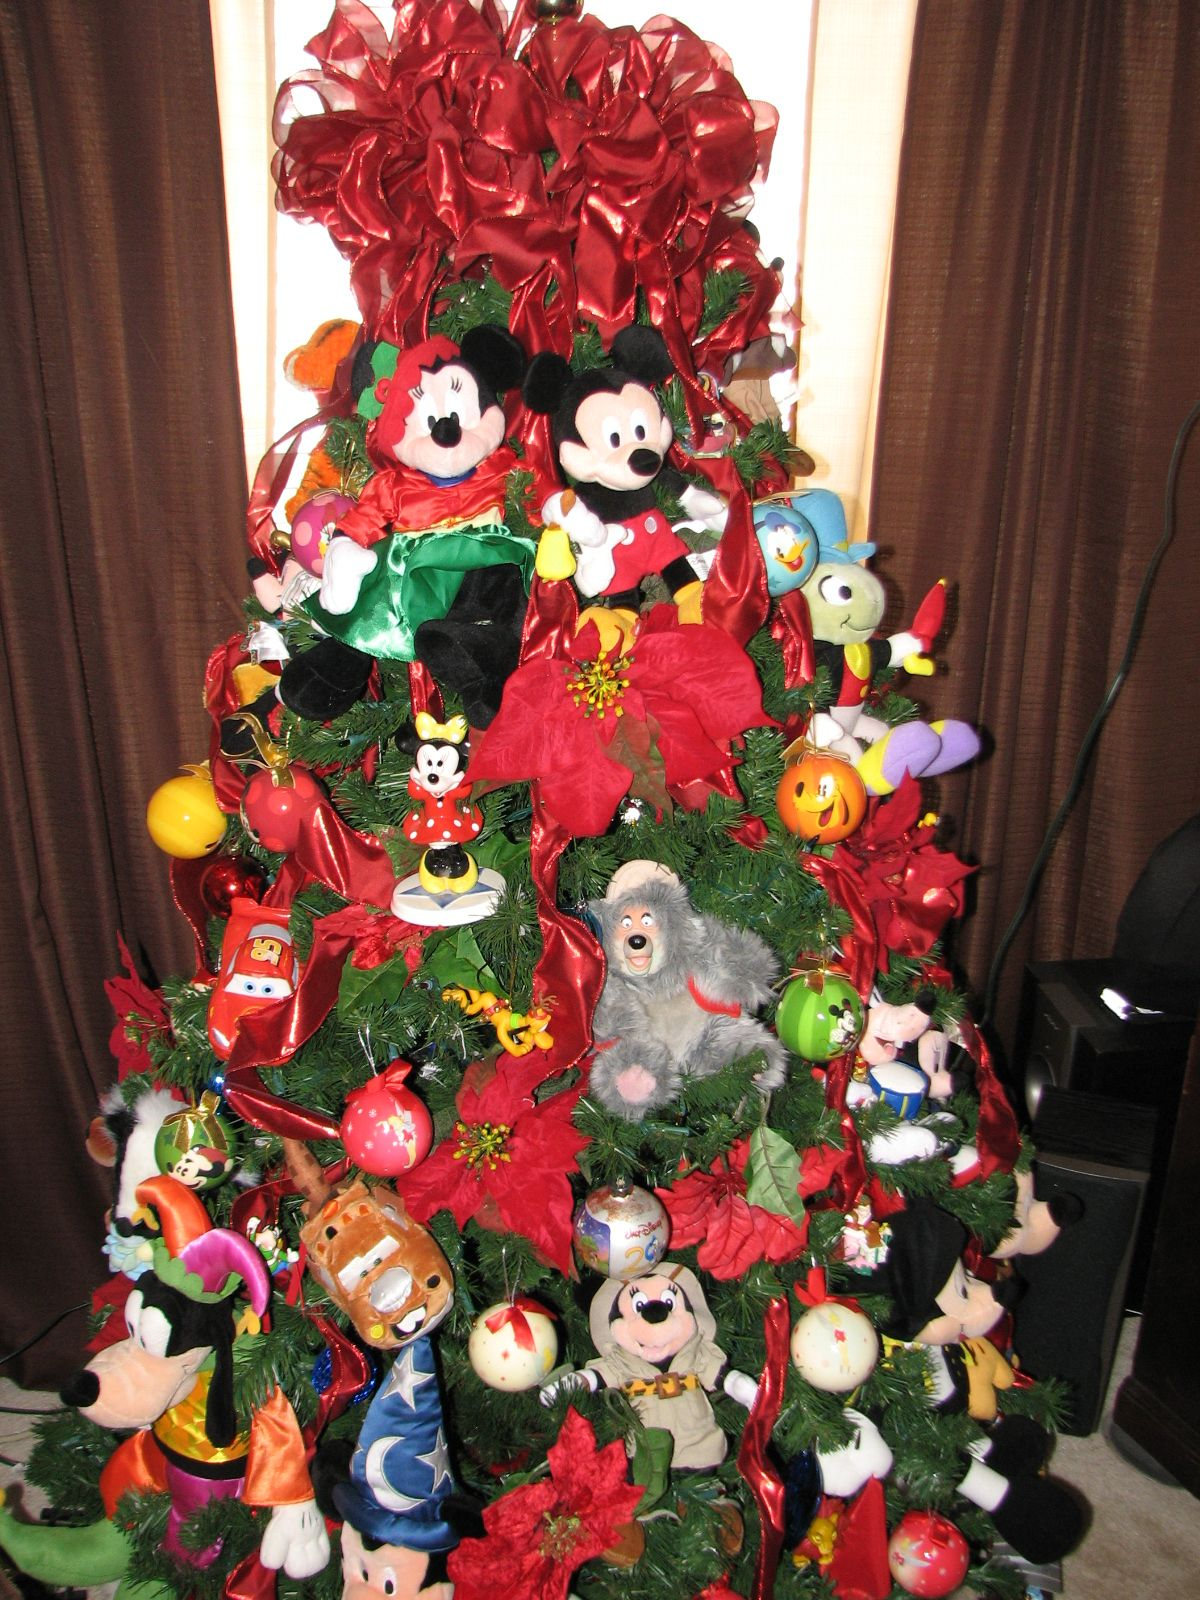 Christmas Toys Disney : Disney christmas tree put together with stuffed